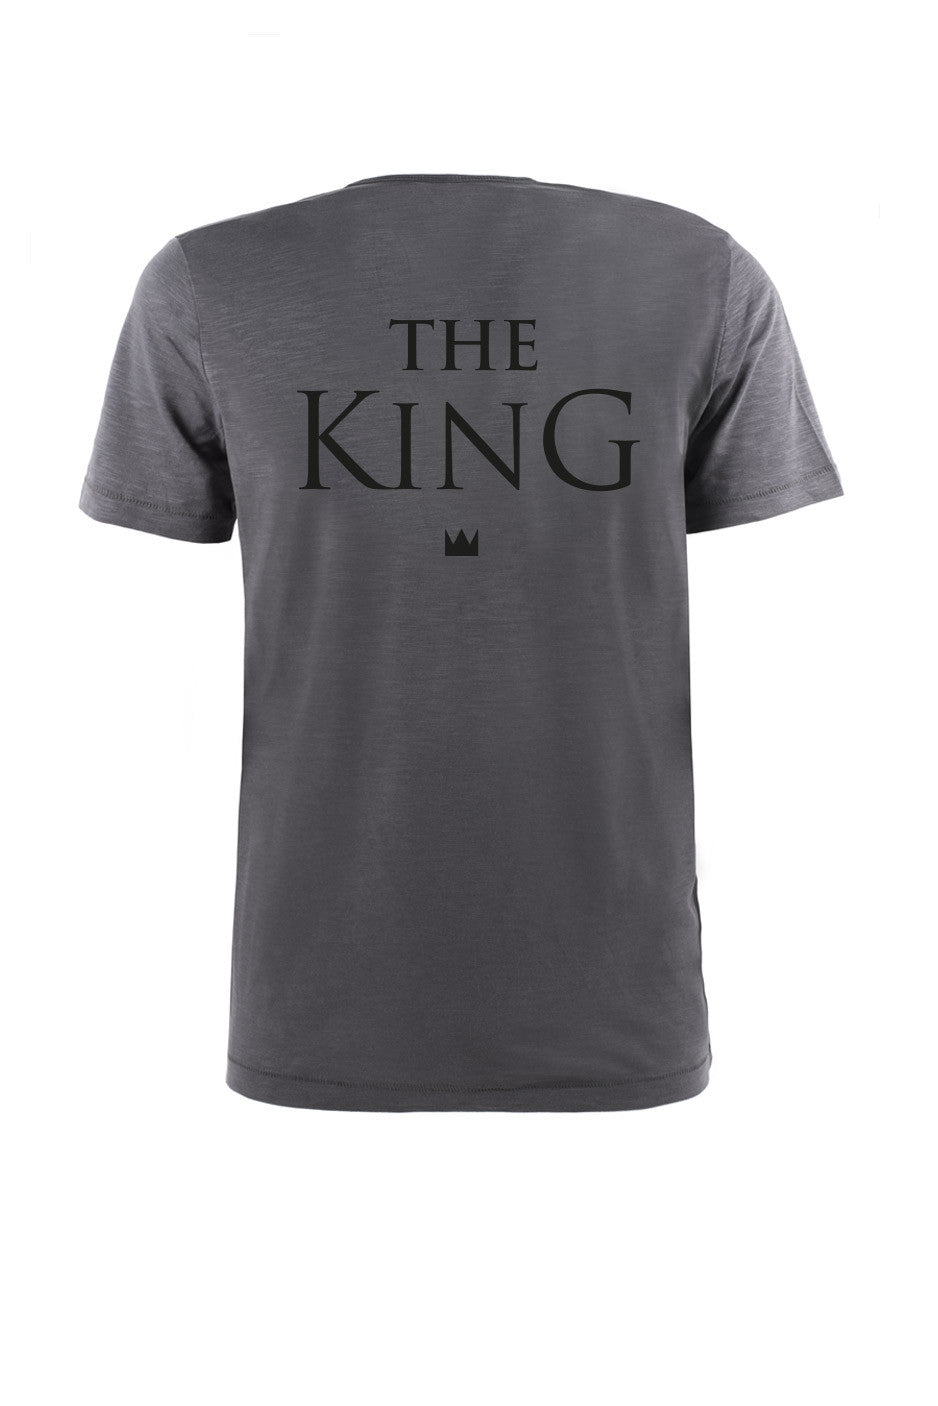 THE KING AND HIS QUEEN T-SHIRT | NOHOW STYLE